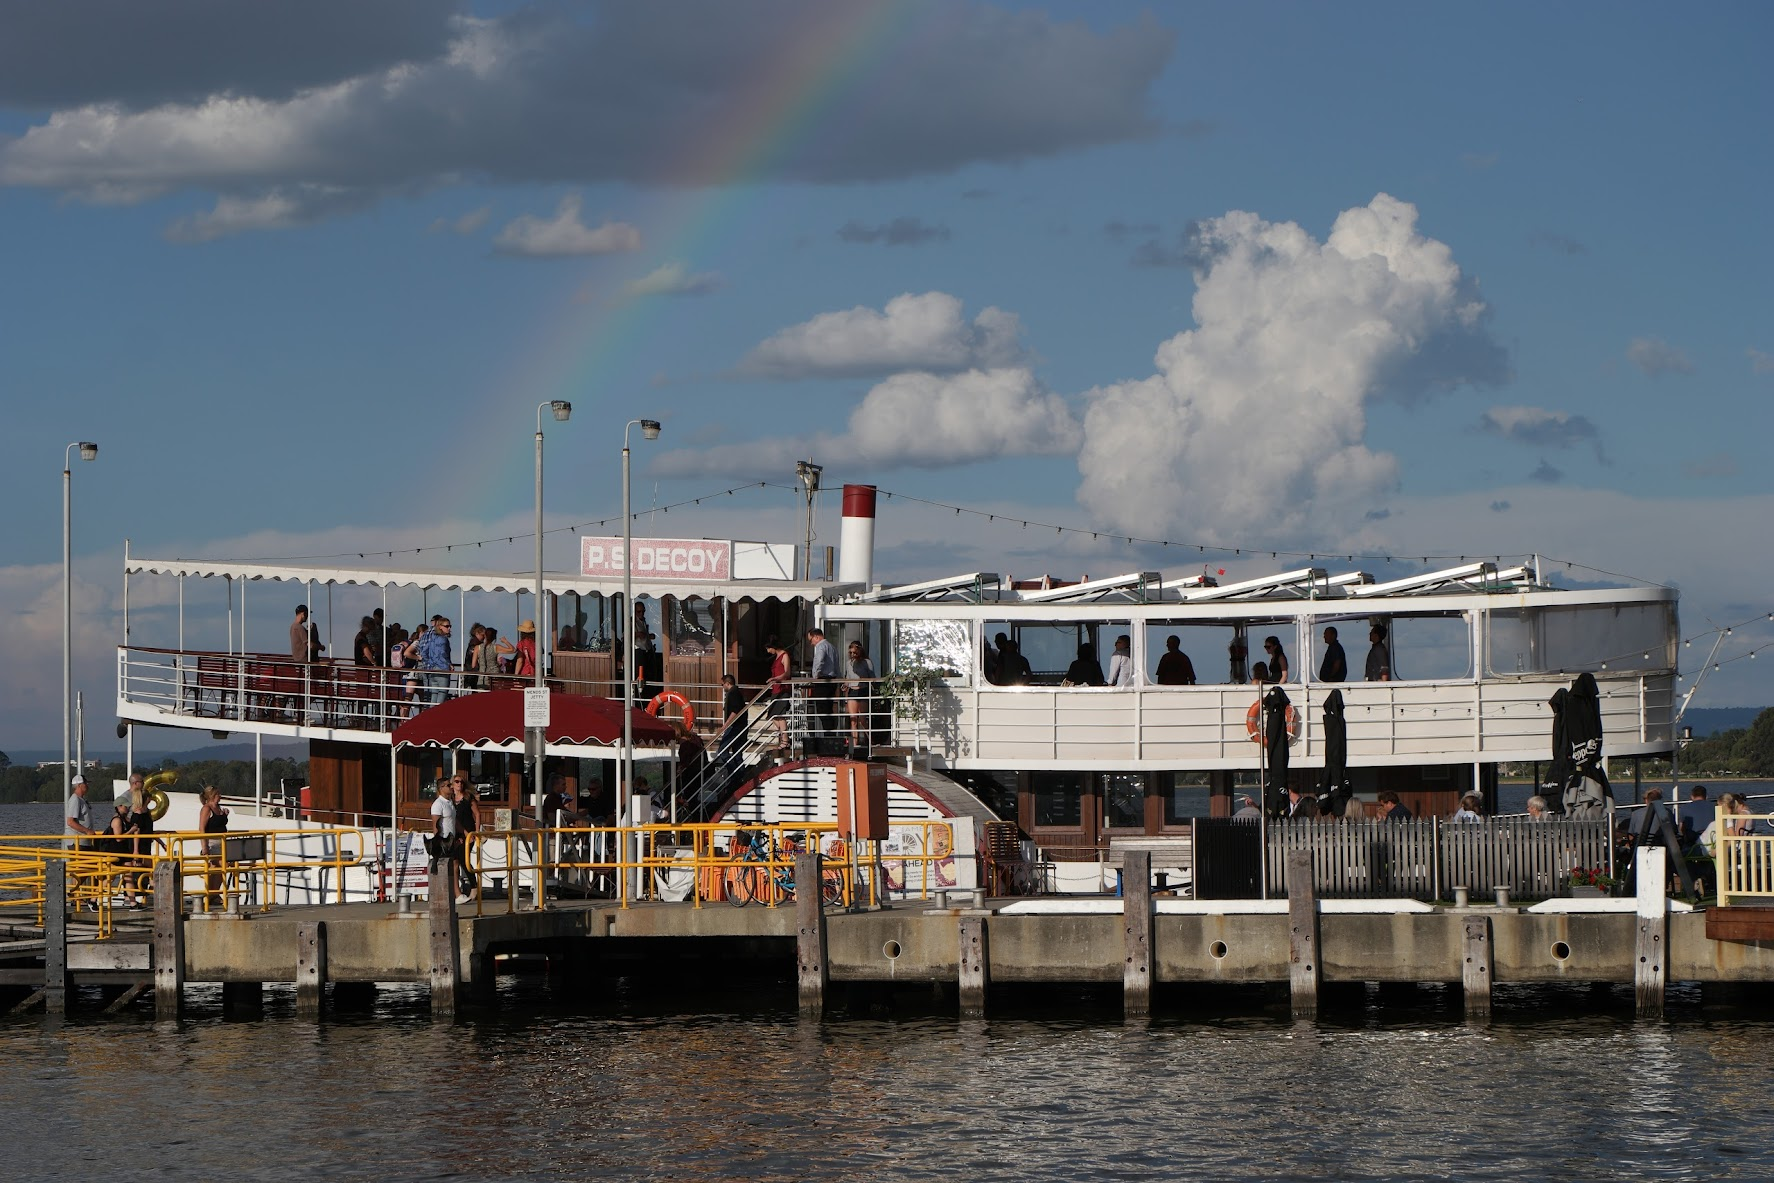 A rainbow kisses the paddlesteamer Decoy